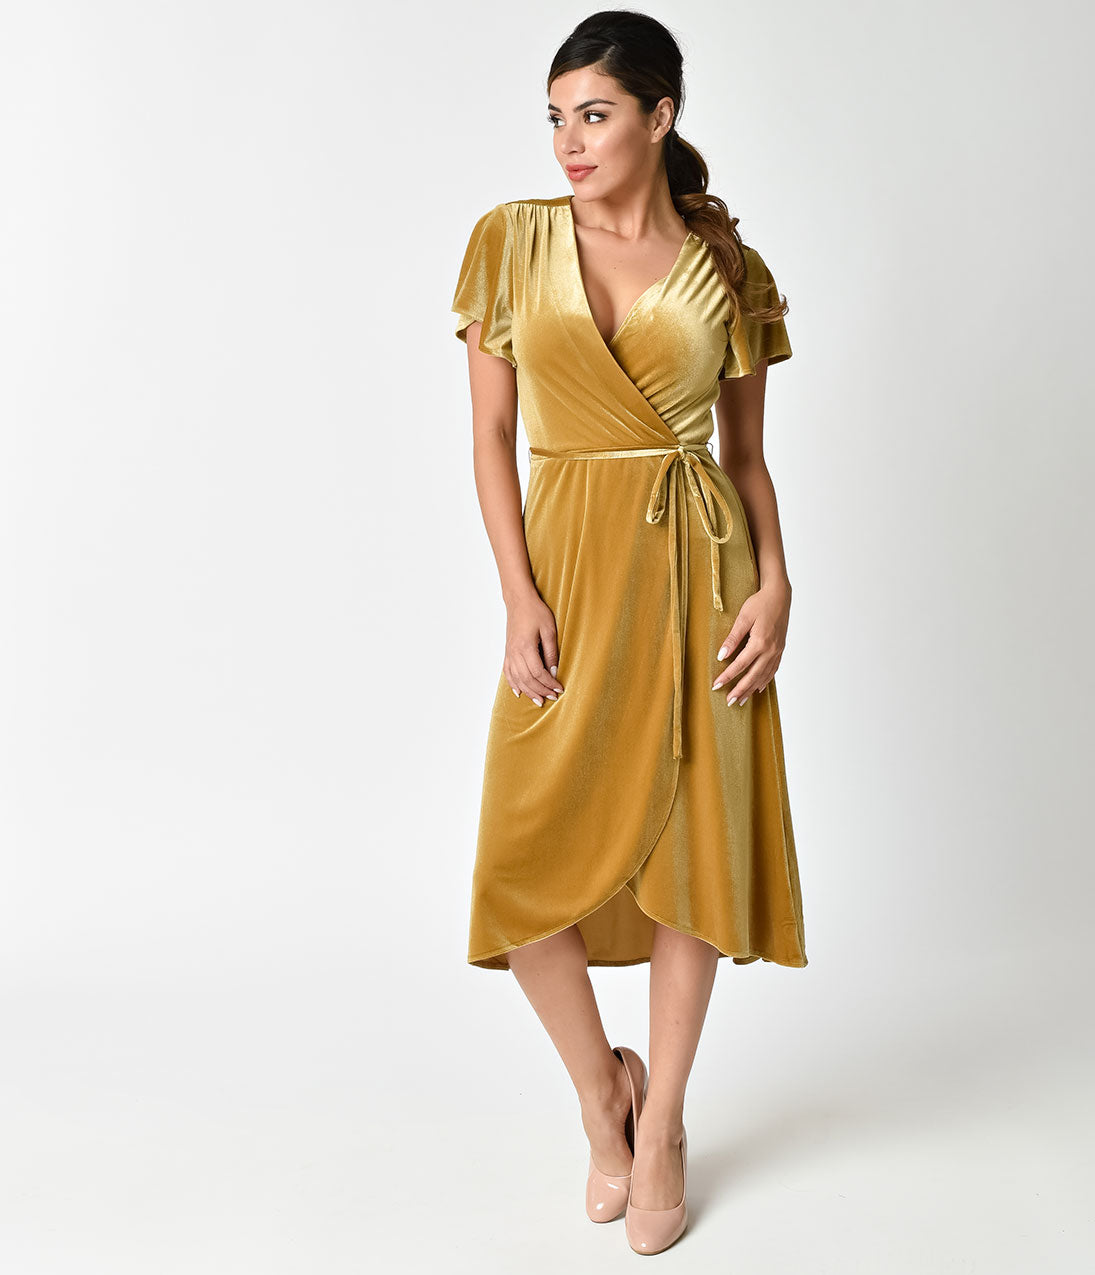 1940s Evening, Prom, Party, Cocktail Dresses & Ball Gowns Retro Style Mustard Yellow Velvet Wrap Dress $72.00 AT vintagedancer.com